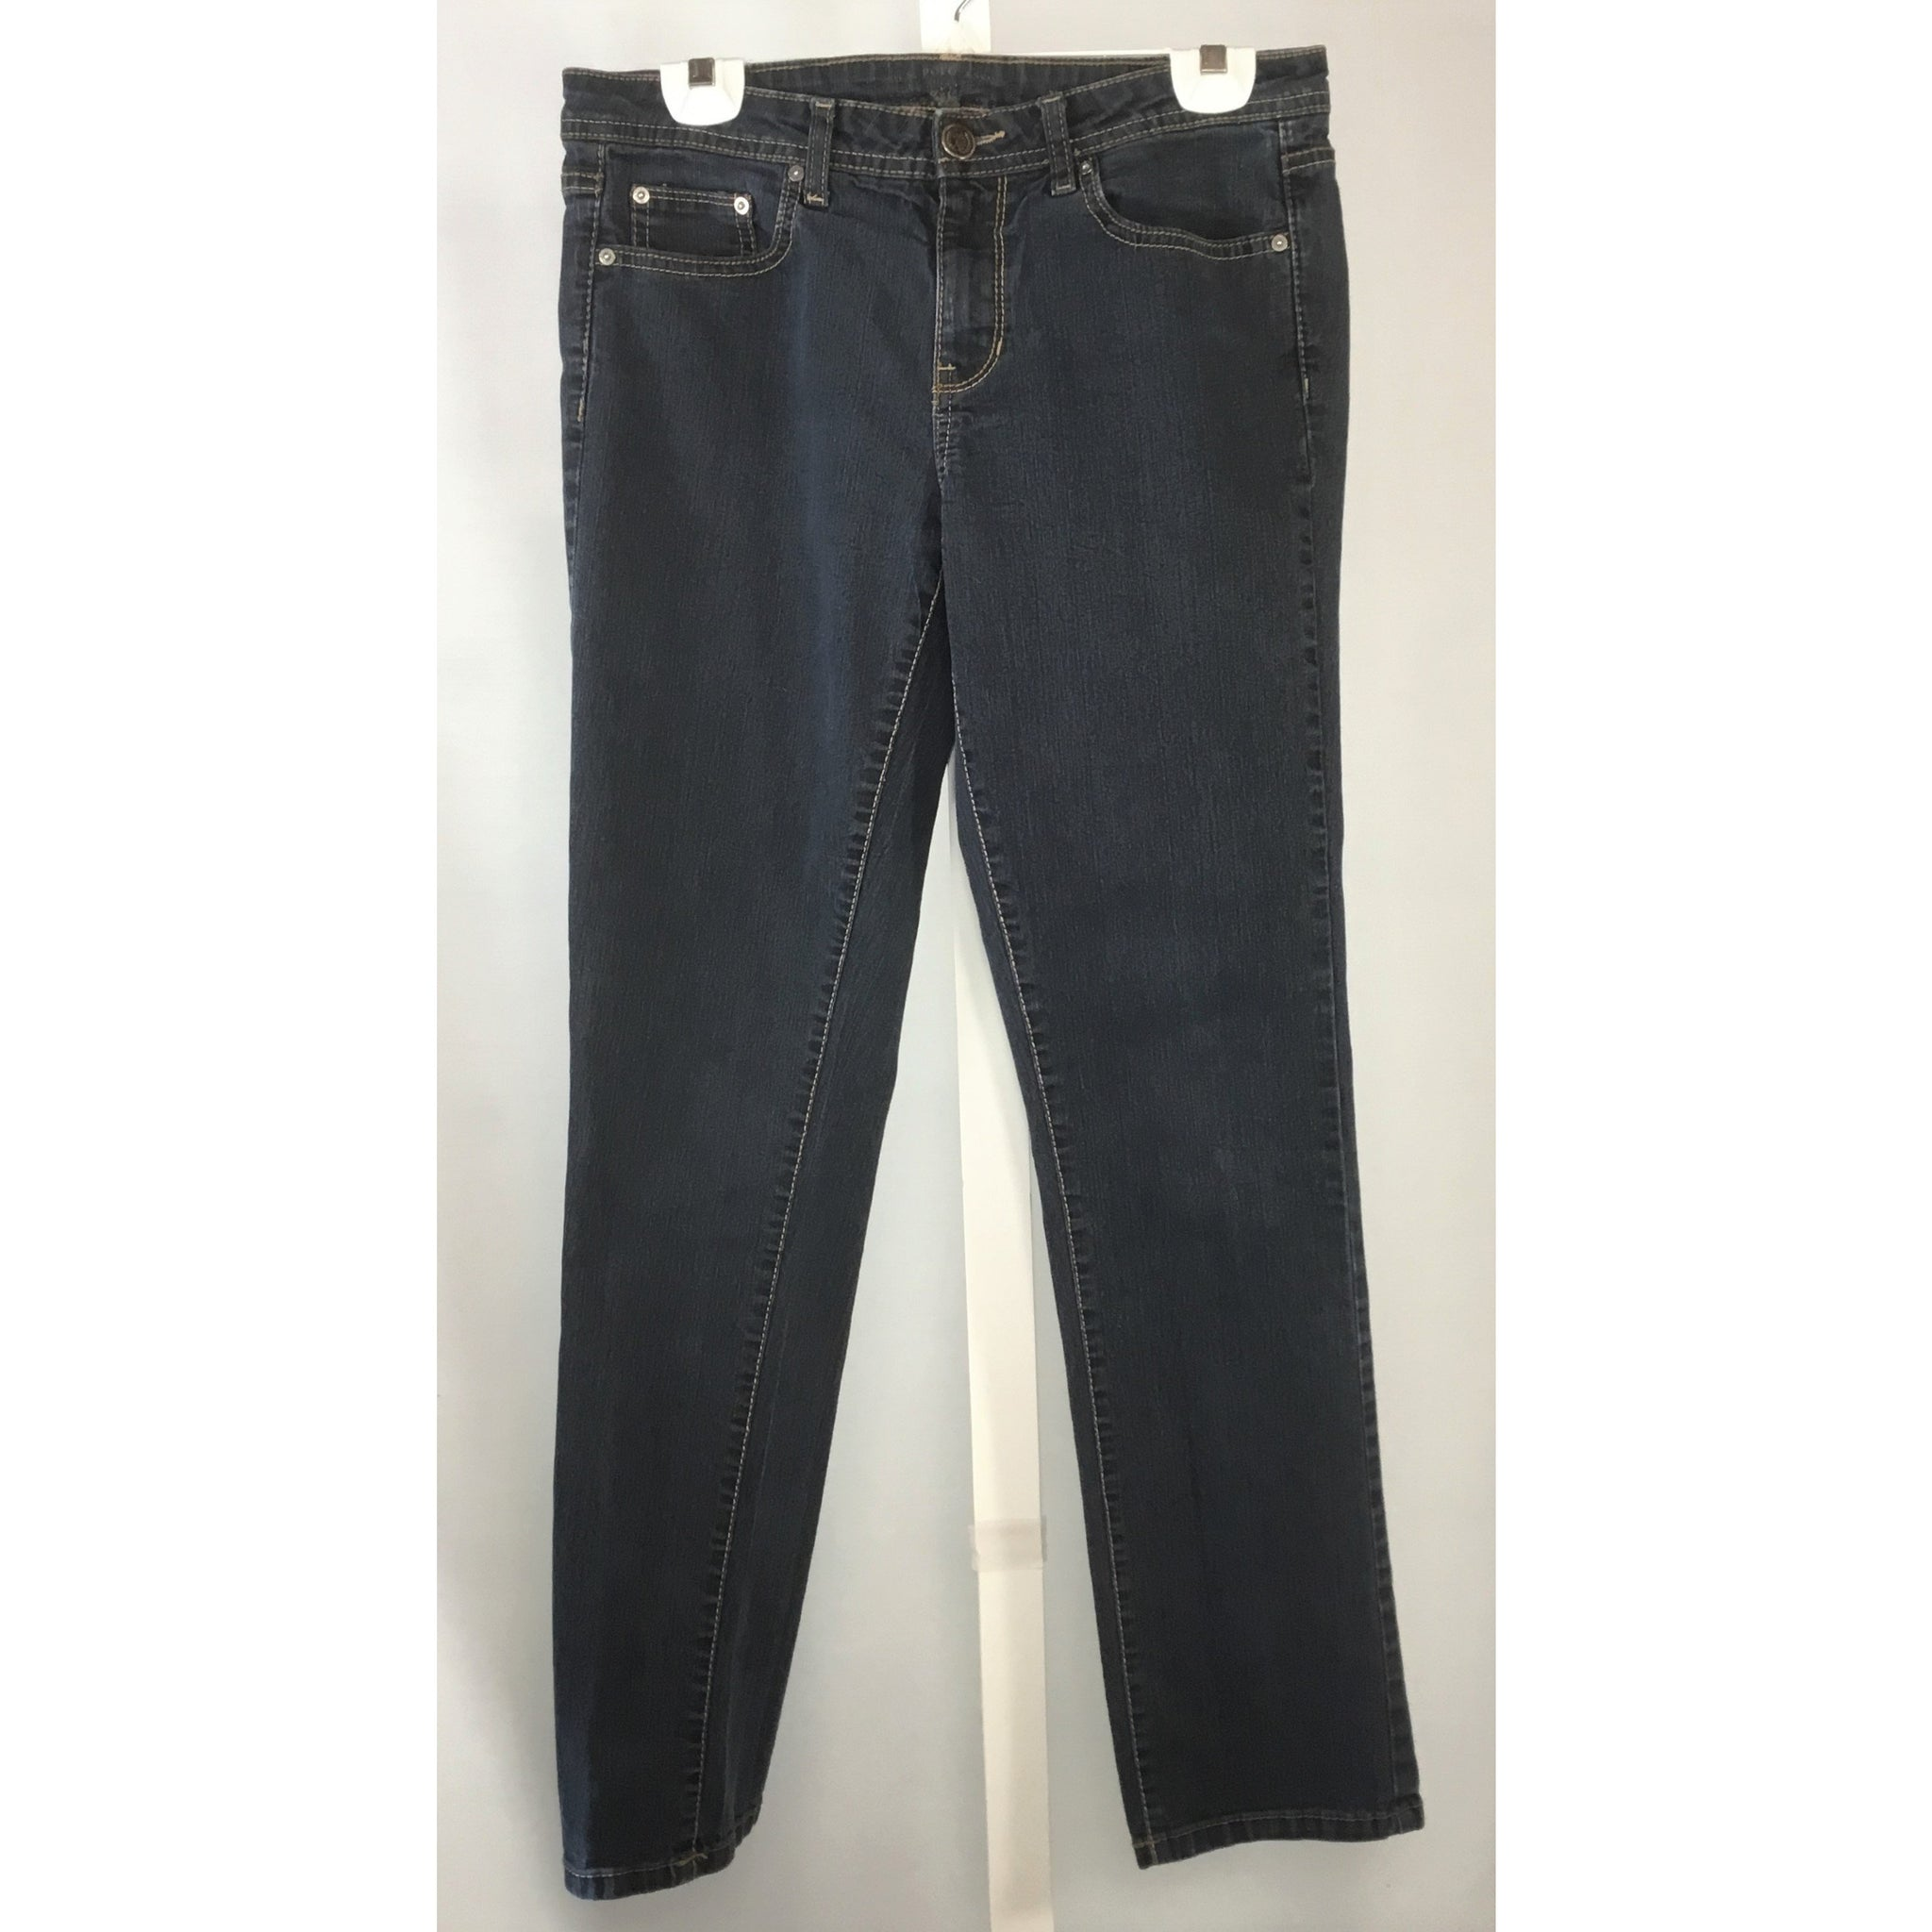 U.S. Polo Assn.  Blue Jeans - Discoveries size M